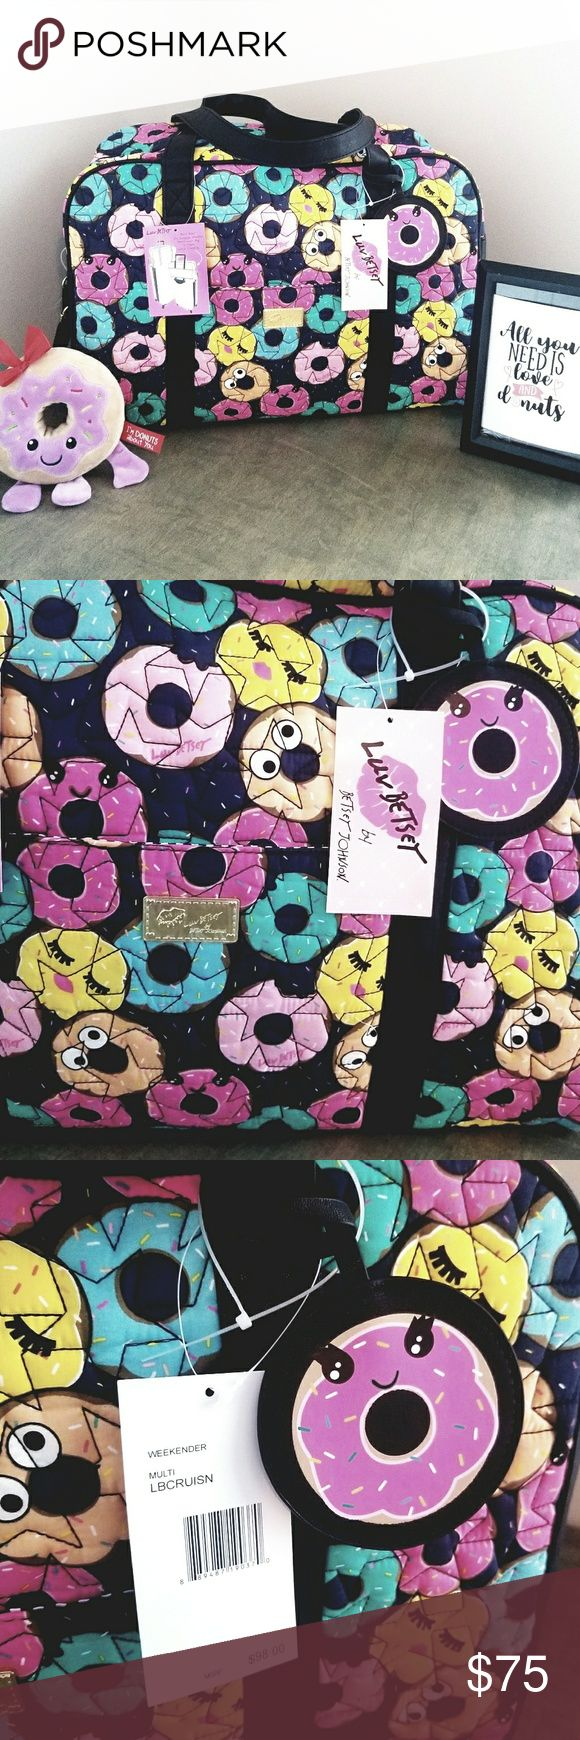 """New Betsey Johnson Weekender **DONUTS** Betsey Johnson weekender overnight luggage travel bag. This Donut Cruisin Duffle Bag features a quilted material with aches star pattern and blue, orange, pink, and yellow colors, doughnut designs, black faux leather, two carrying handles, one removable shoulder strap, and top zip closure. Emoji kiss eyelashes Interior: one zip pocket, one open pocket, and three pen slots 100% Cotton Imported 19"""" x 7"""" x 13.5"""" Exterior: one open pockets Betsey Johnson…"""